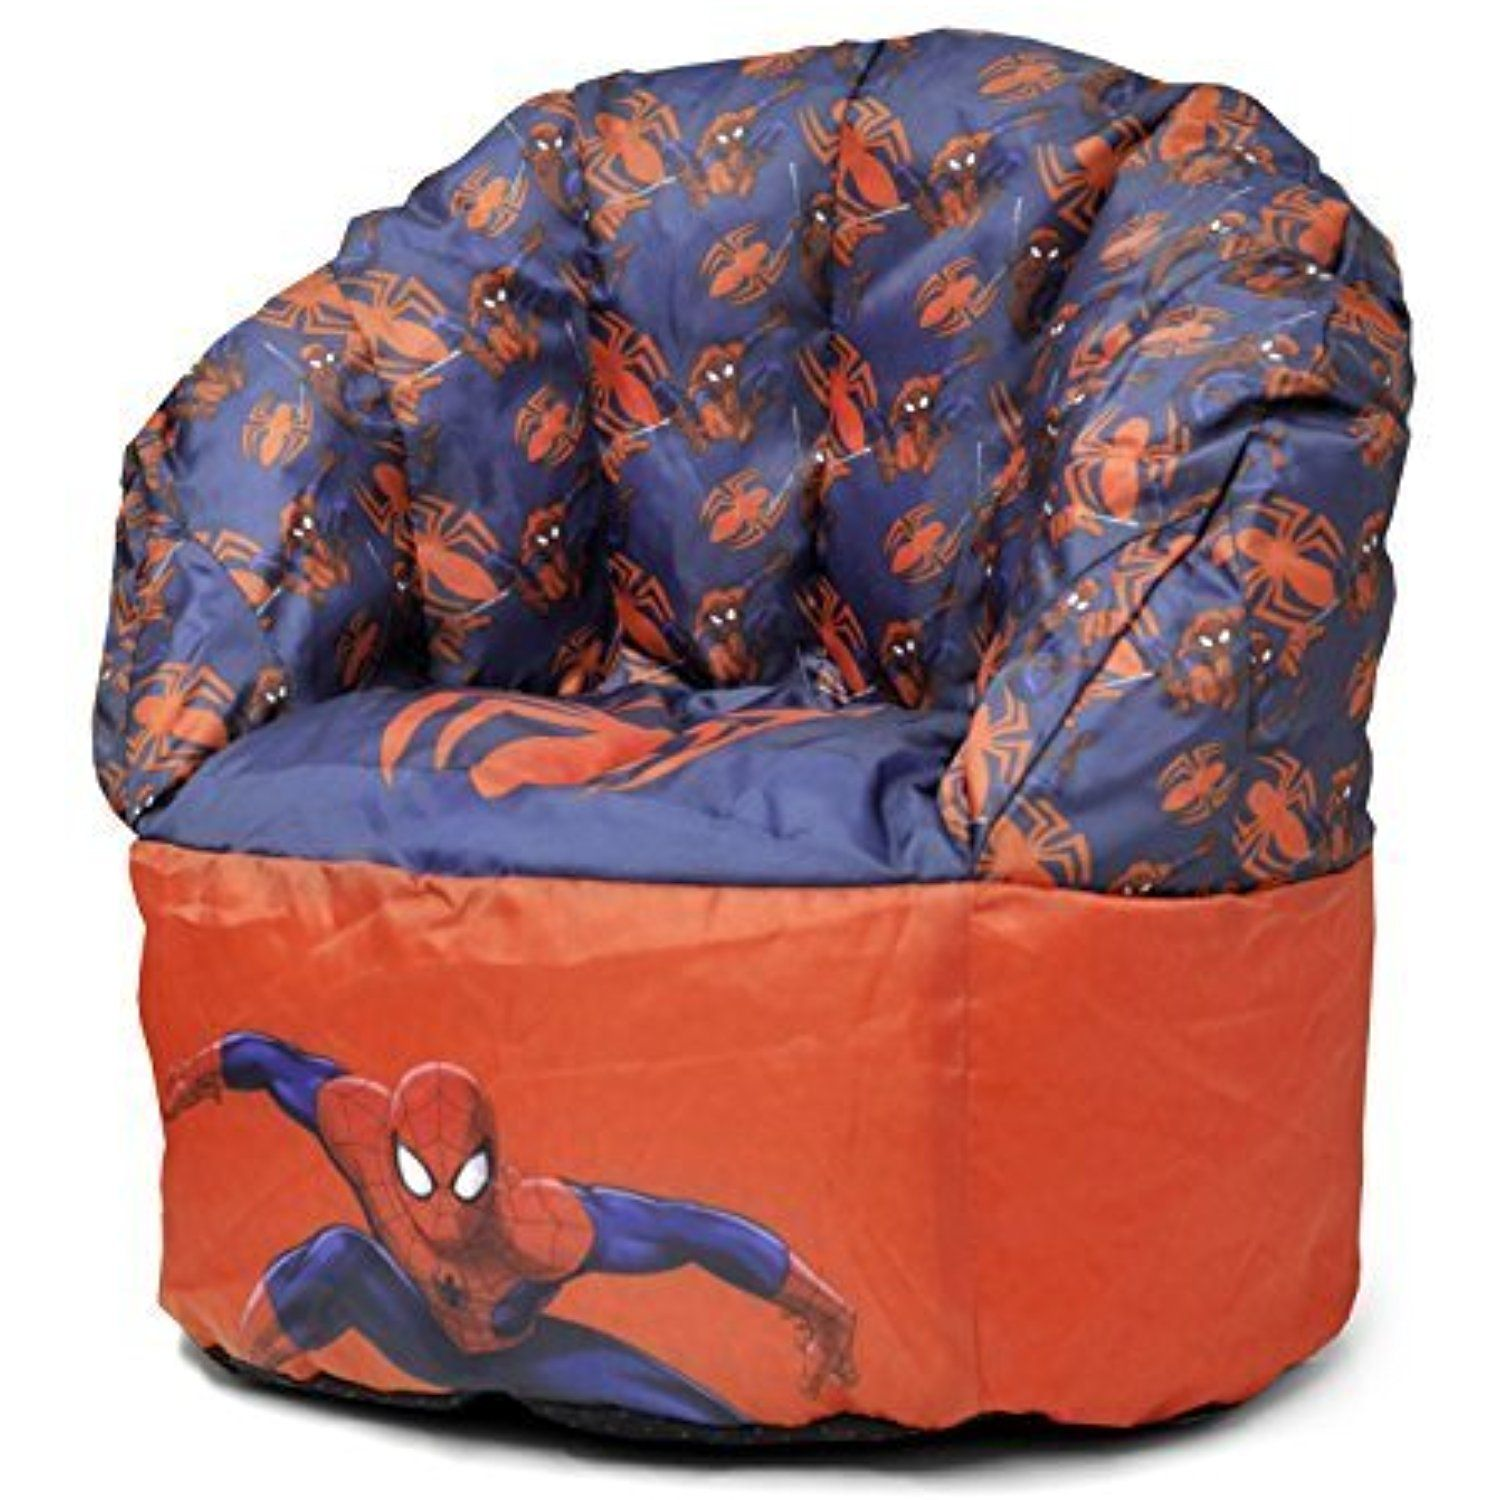 Marvel spiderman toddler bean bag chair you can get